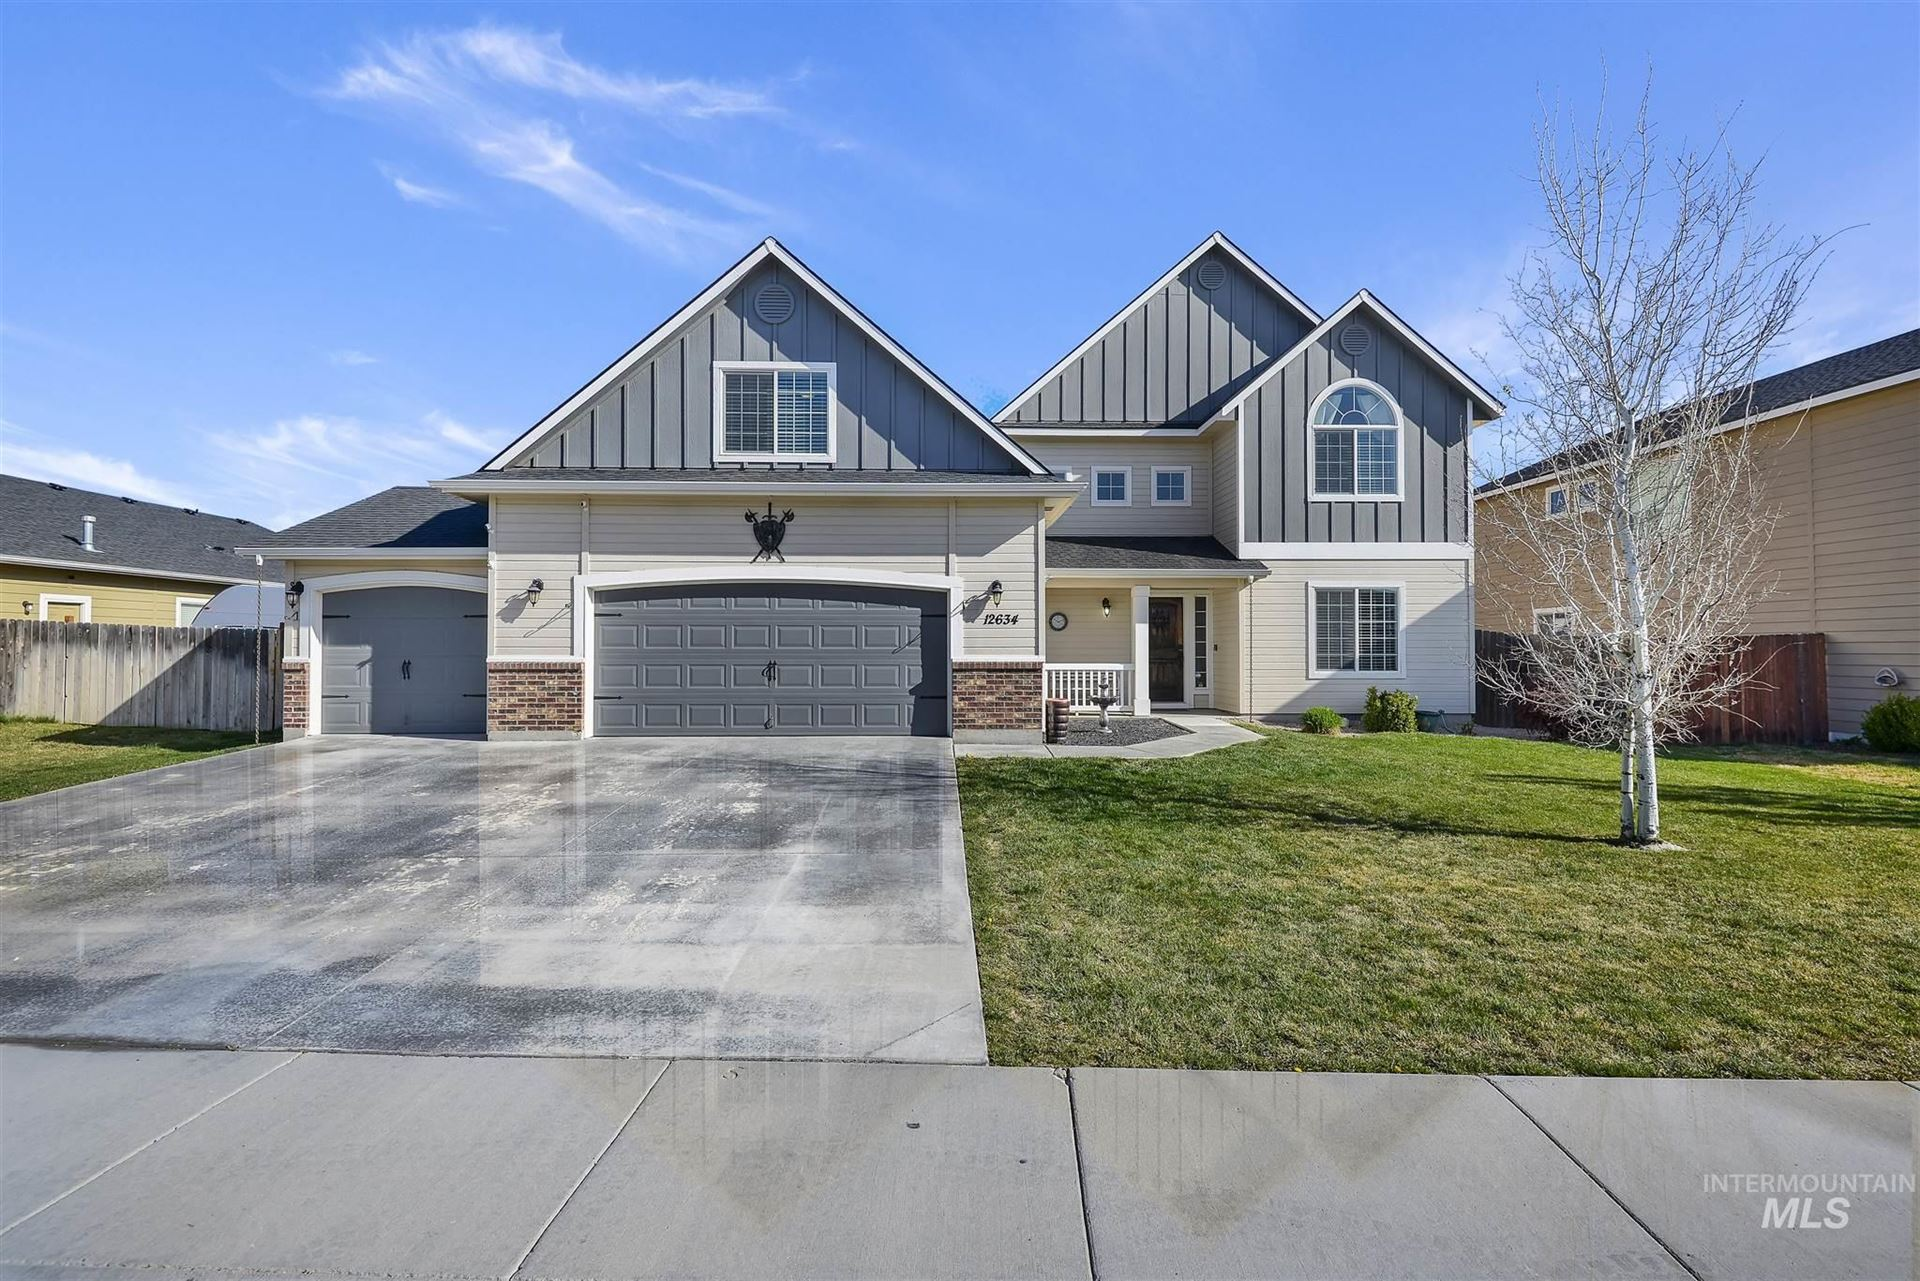 Photo of 12634 Brownstone St, Nampa, ID 83651 (MLS # 98798892)